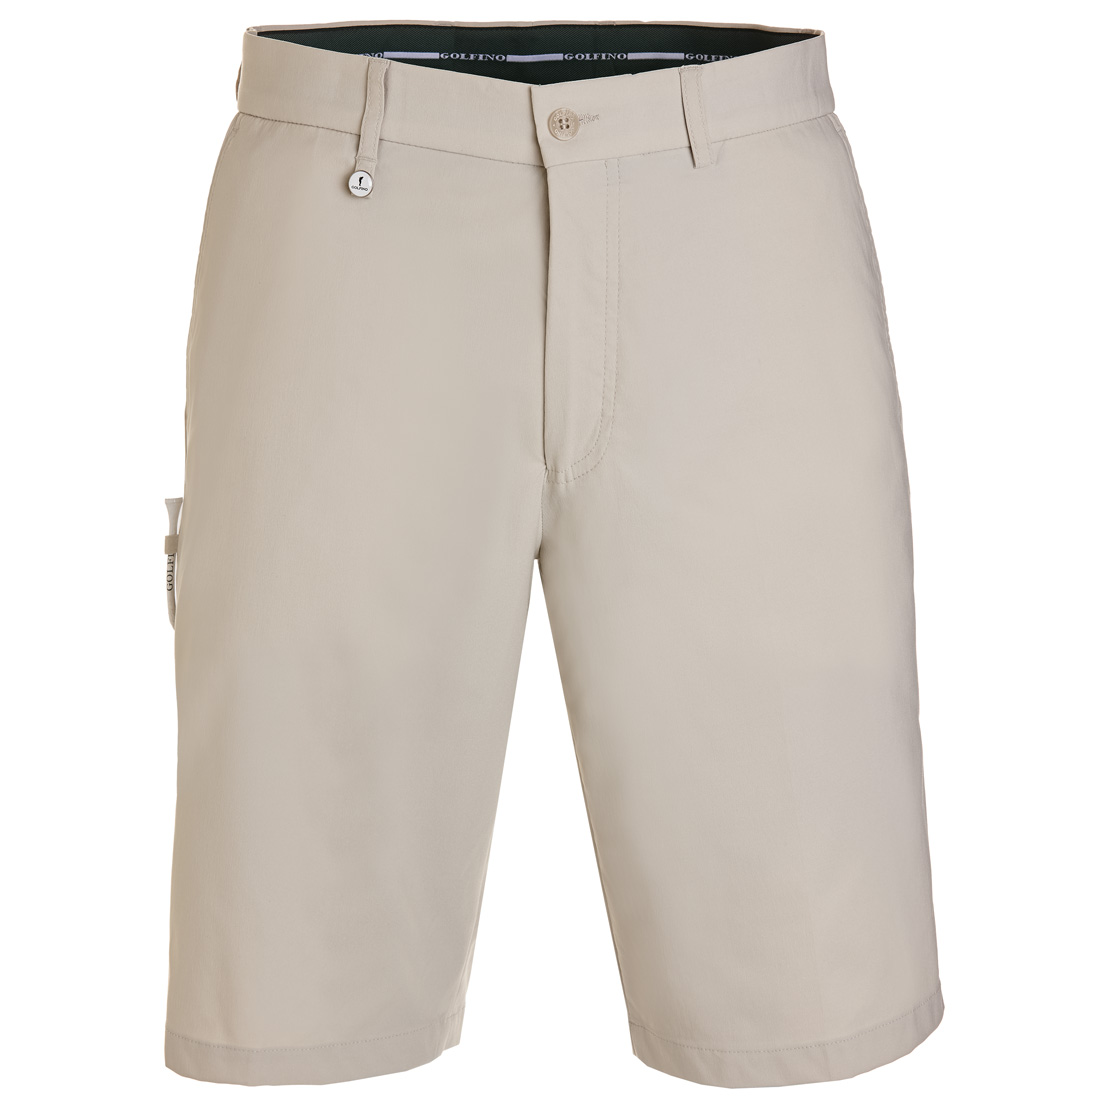 Men's techno stretch sun protection golf Bermudas in regular fit